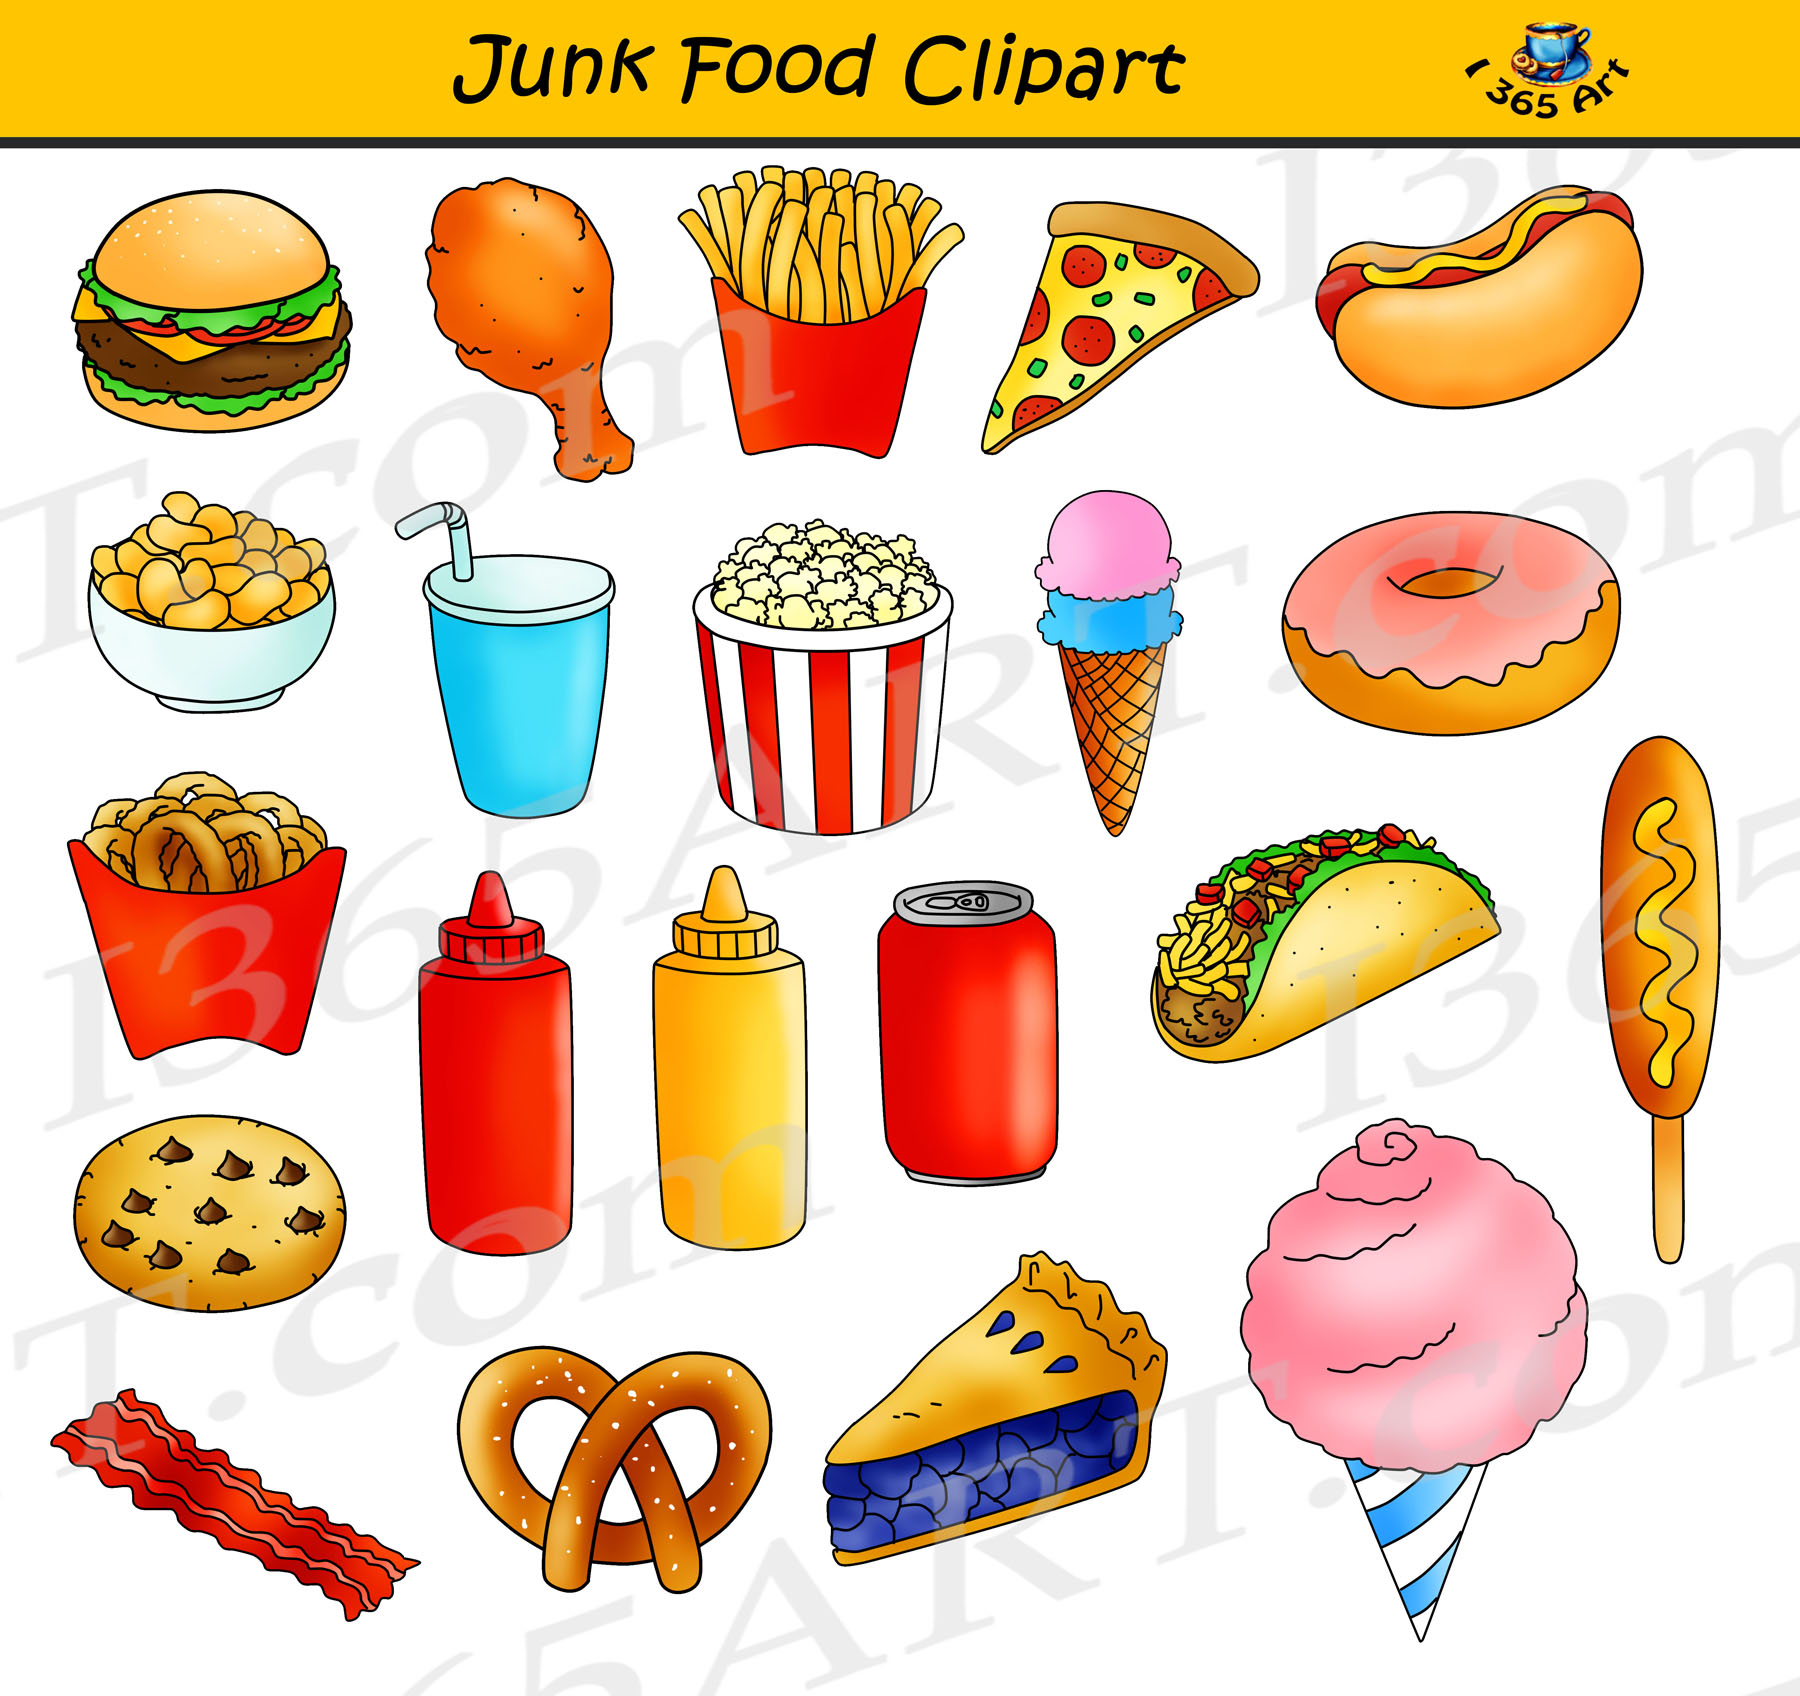 junk food clipart fast food graphics commercial use clipart rh clipart4school com junk food clipart free animated junk food clipart